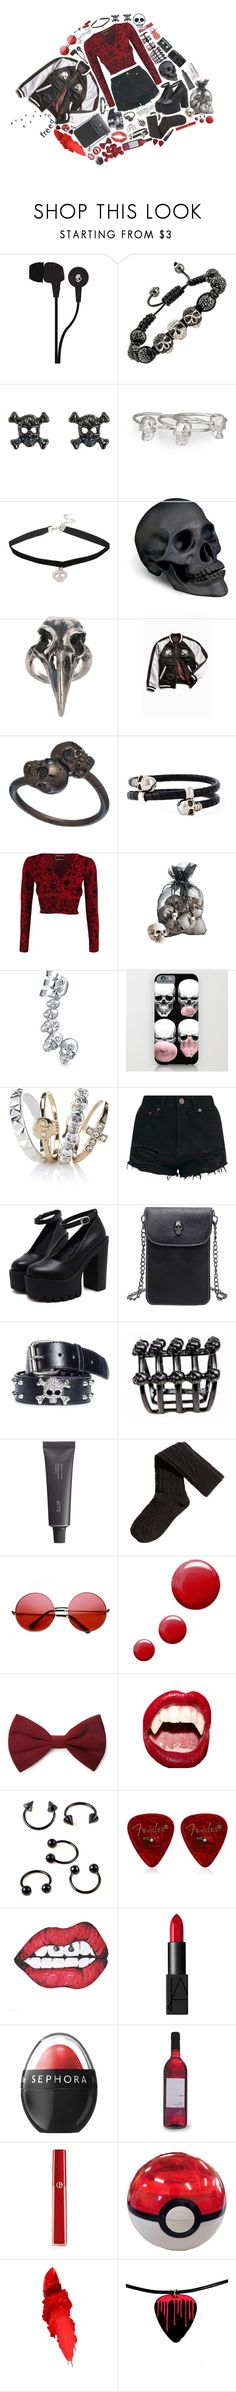 """""""Freedom"""" by k-pop-things-and-such ❤ liked on Polyvore featuring Skullcandy, Jules Smith, Hot Topic, L'Objet, Pamela Love, Urban Outfitters, Michael Spirito, Alexander McQueen, Pier 1 Imports and Bling Jewelry"""